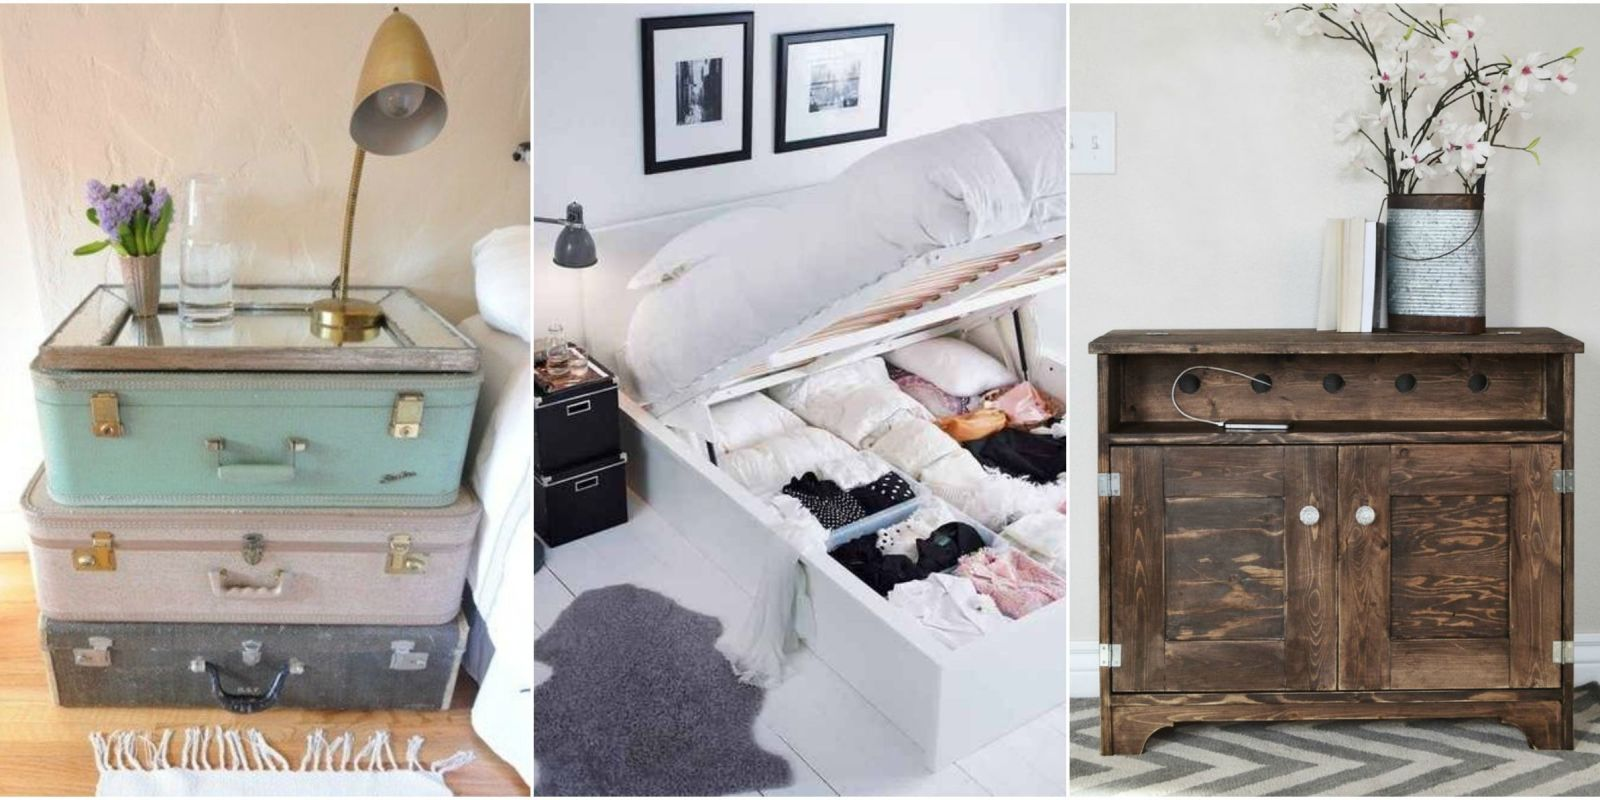 Remodelacion De Casas Of Bedroom Storage Hacks Bedroom Organization Ideas